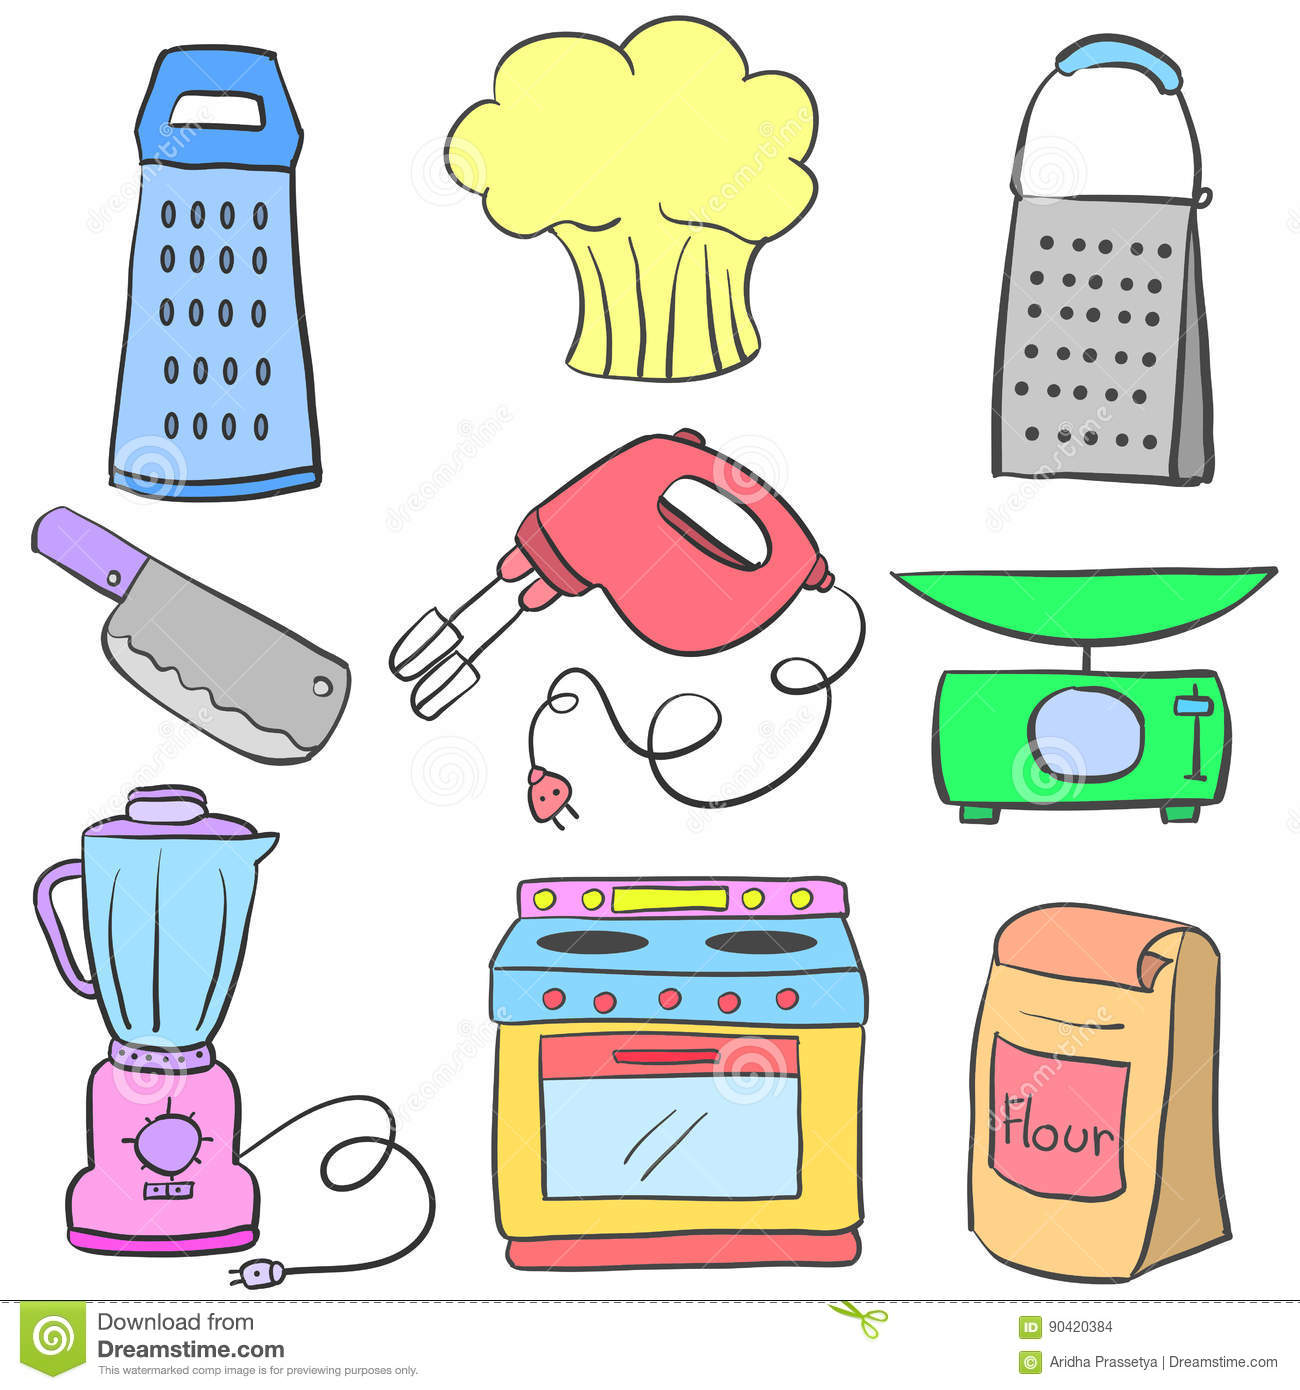 Doodle Of Kitchen Set Equipment Colorful Stock Vector Illustration